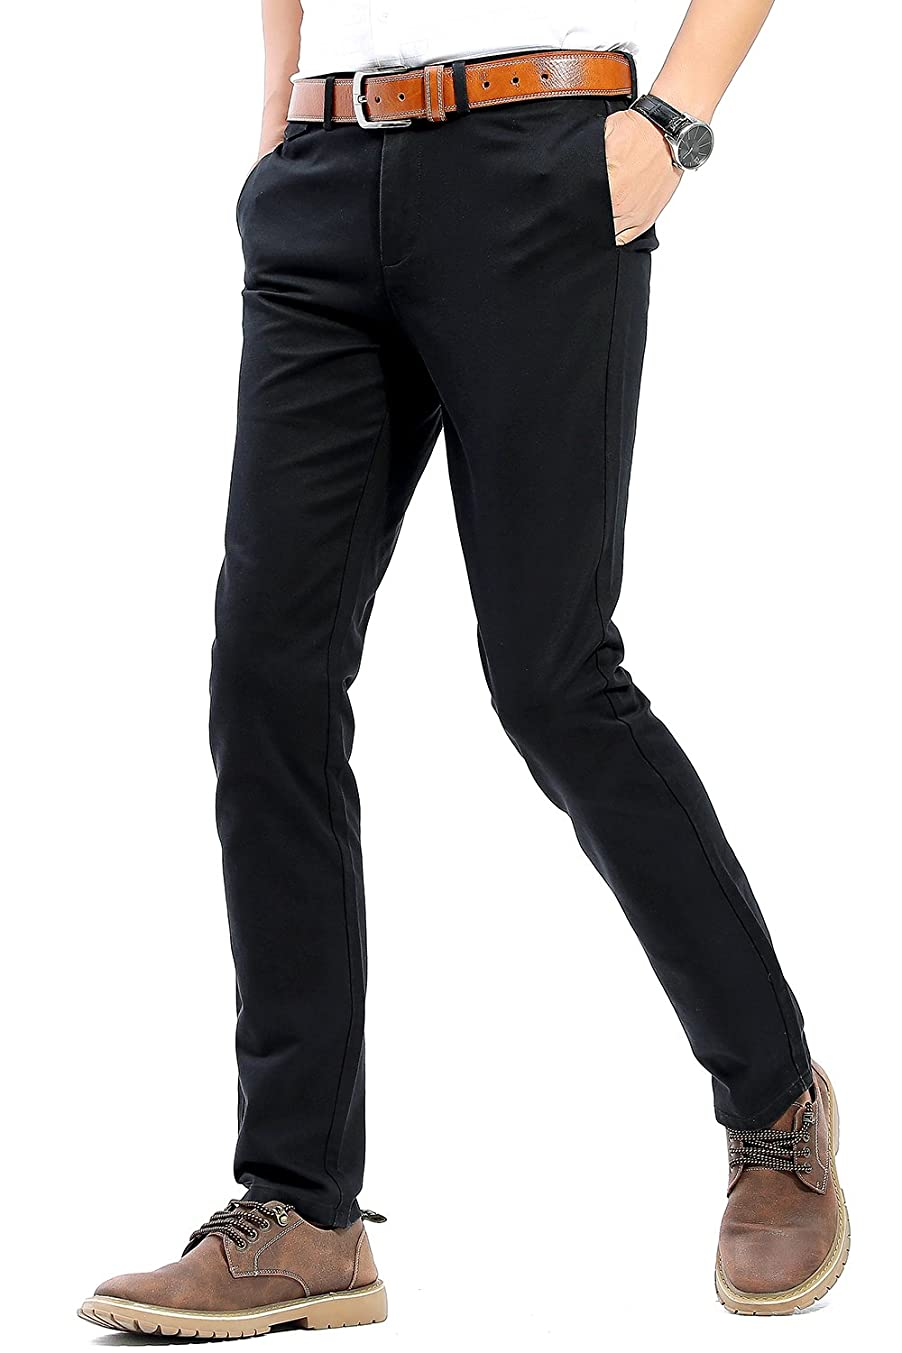 INFLATION Men's Stretchy Slim Fit Casual Pants,100% Cotton Flat Front Trousers Dress Pants for Men